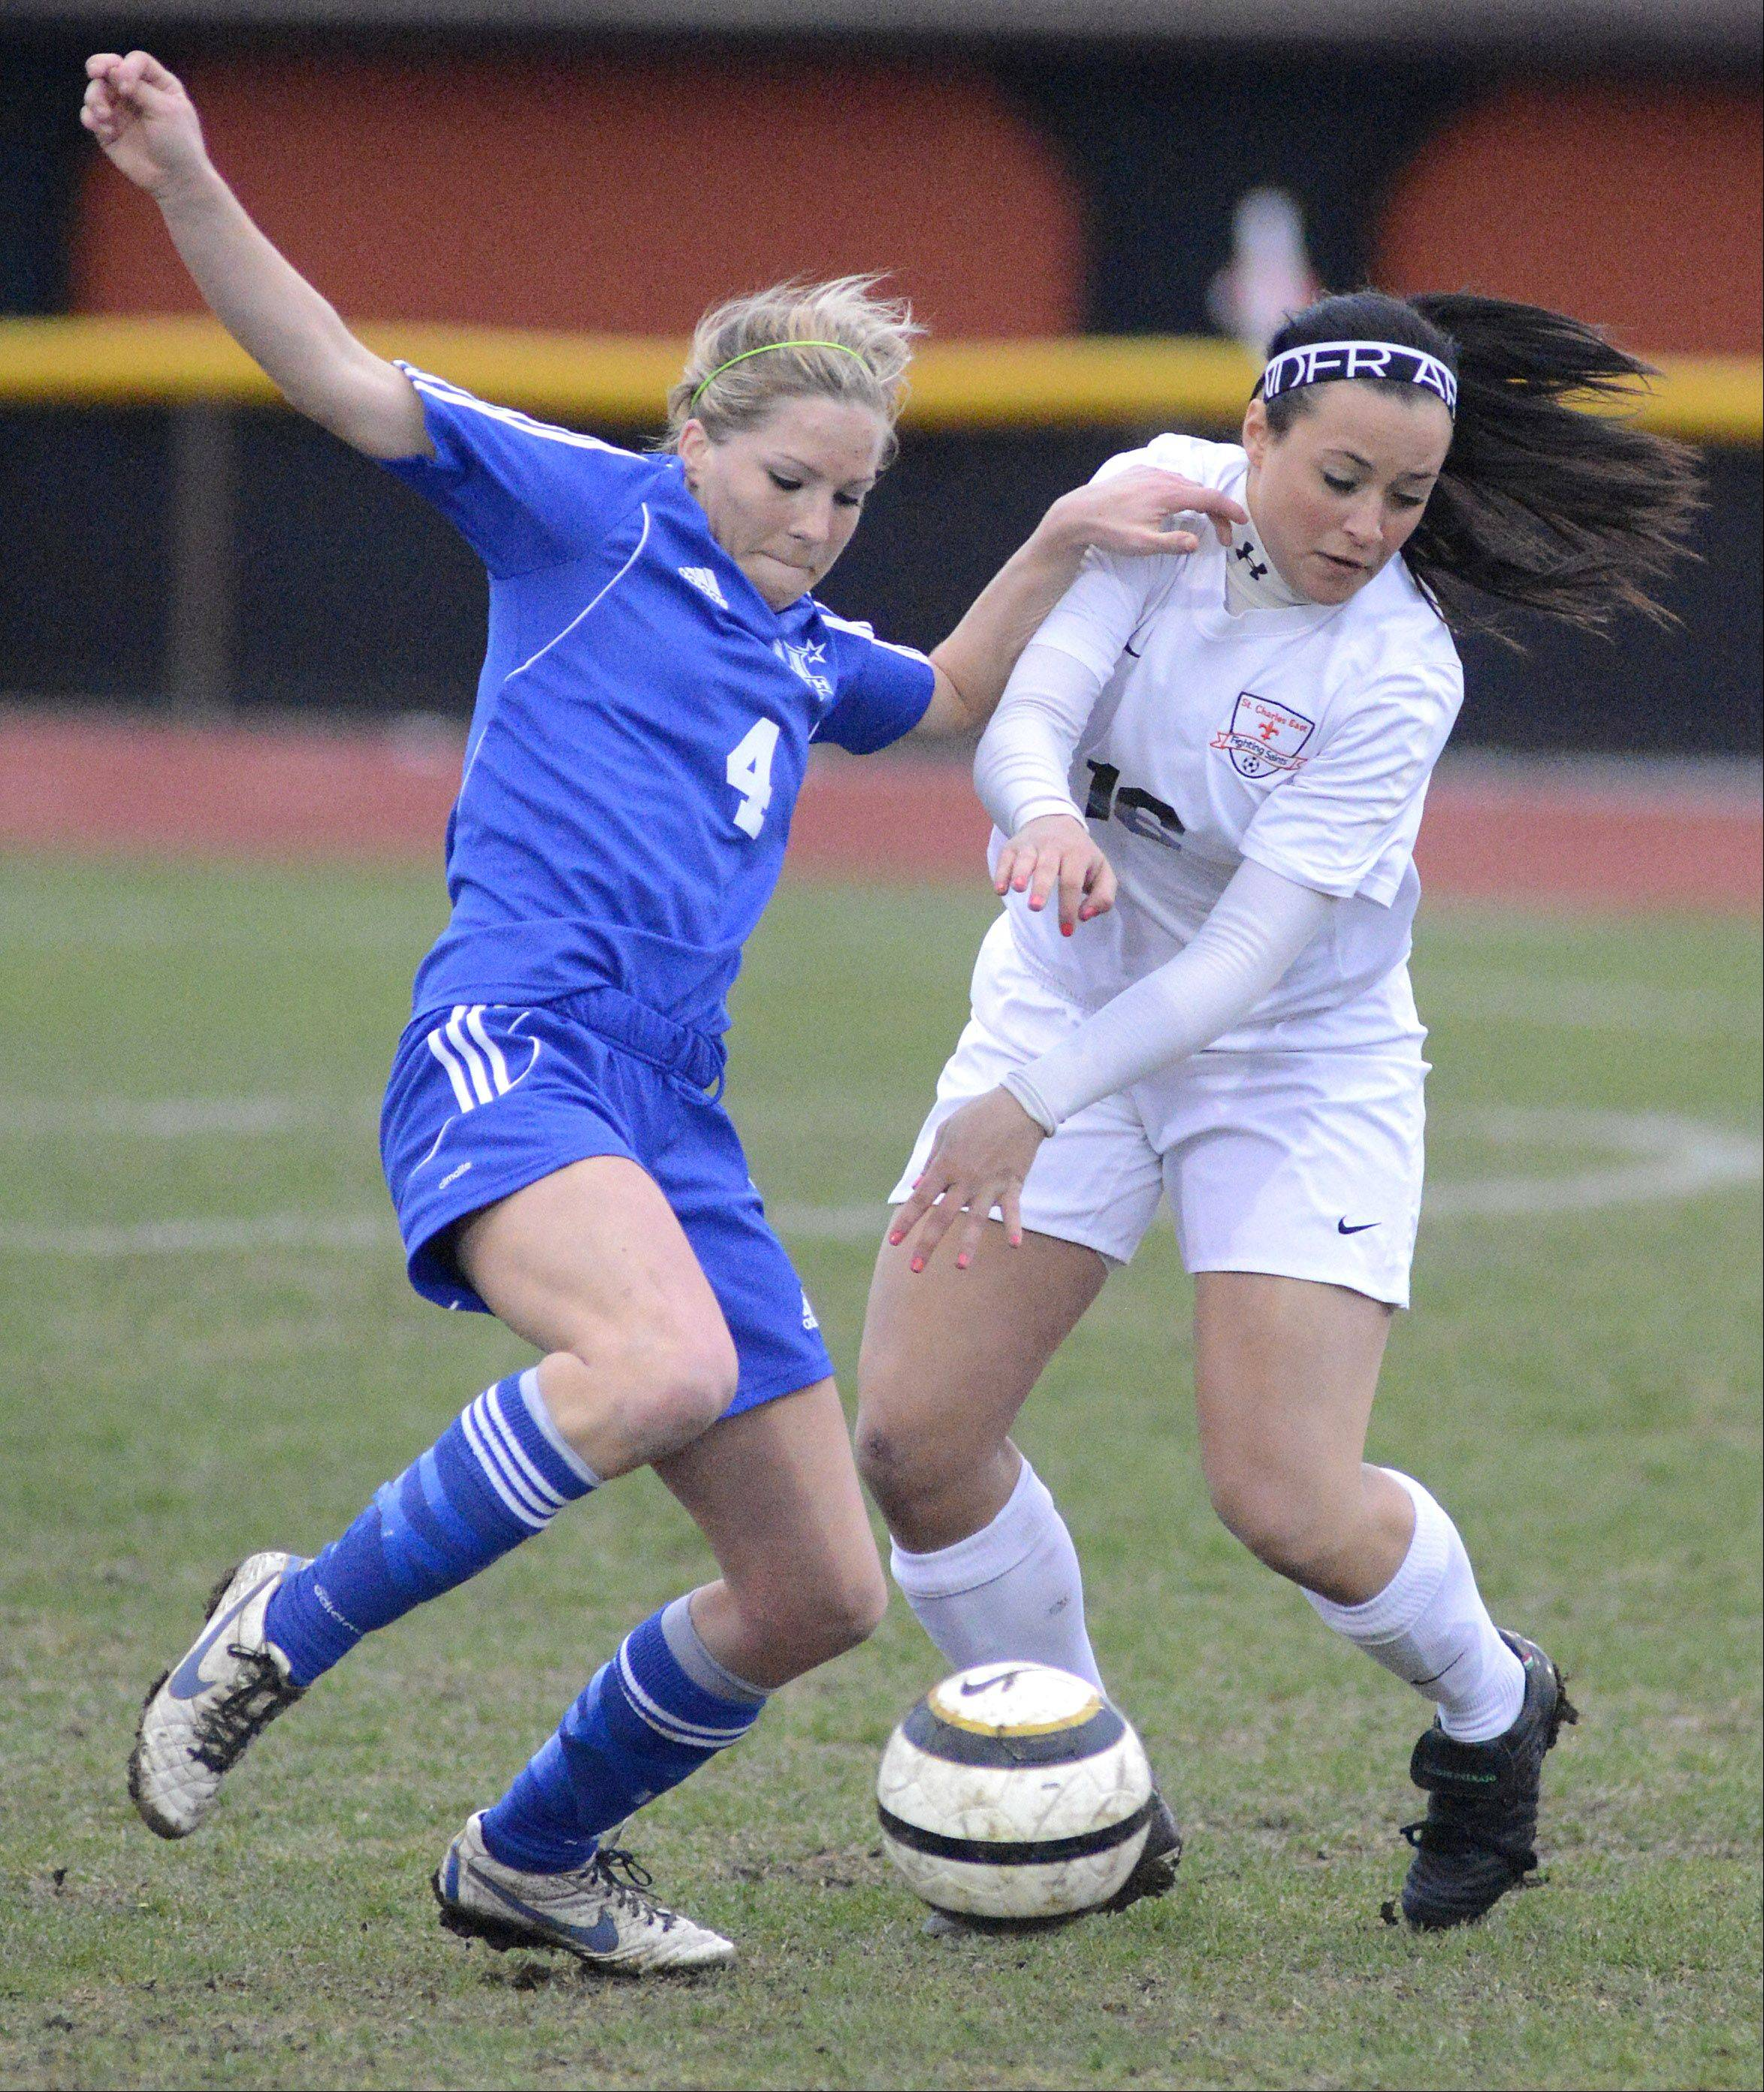 St. Charles North's Jenny Barr and St. Charles East's Hannah Rawson fight for possession of the ball in the first half on Tuesday.